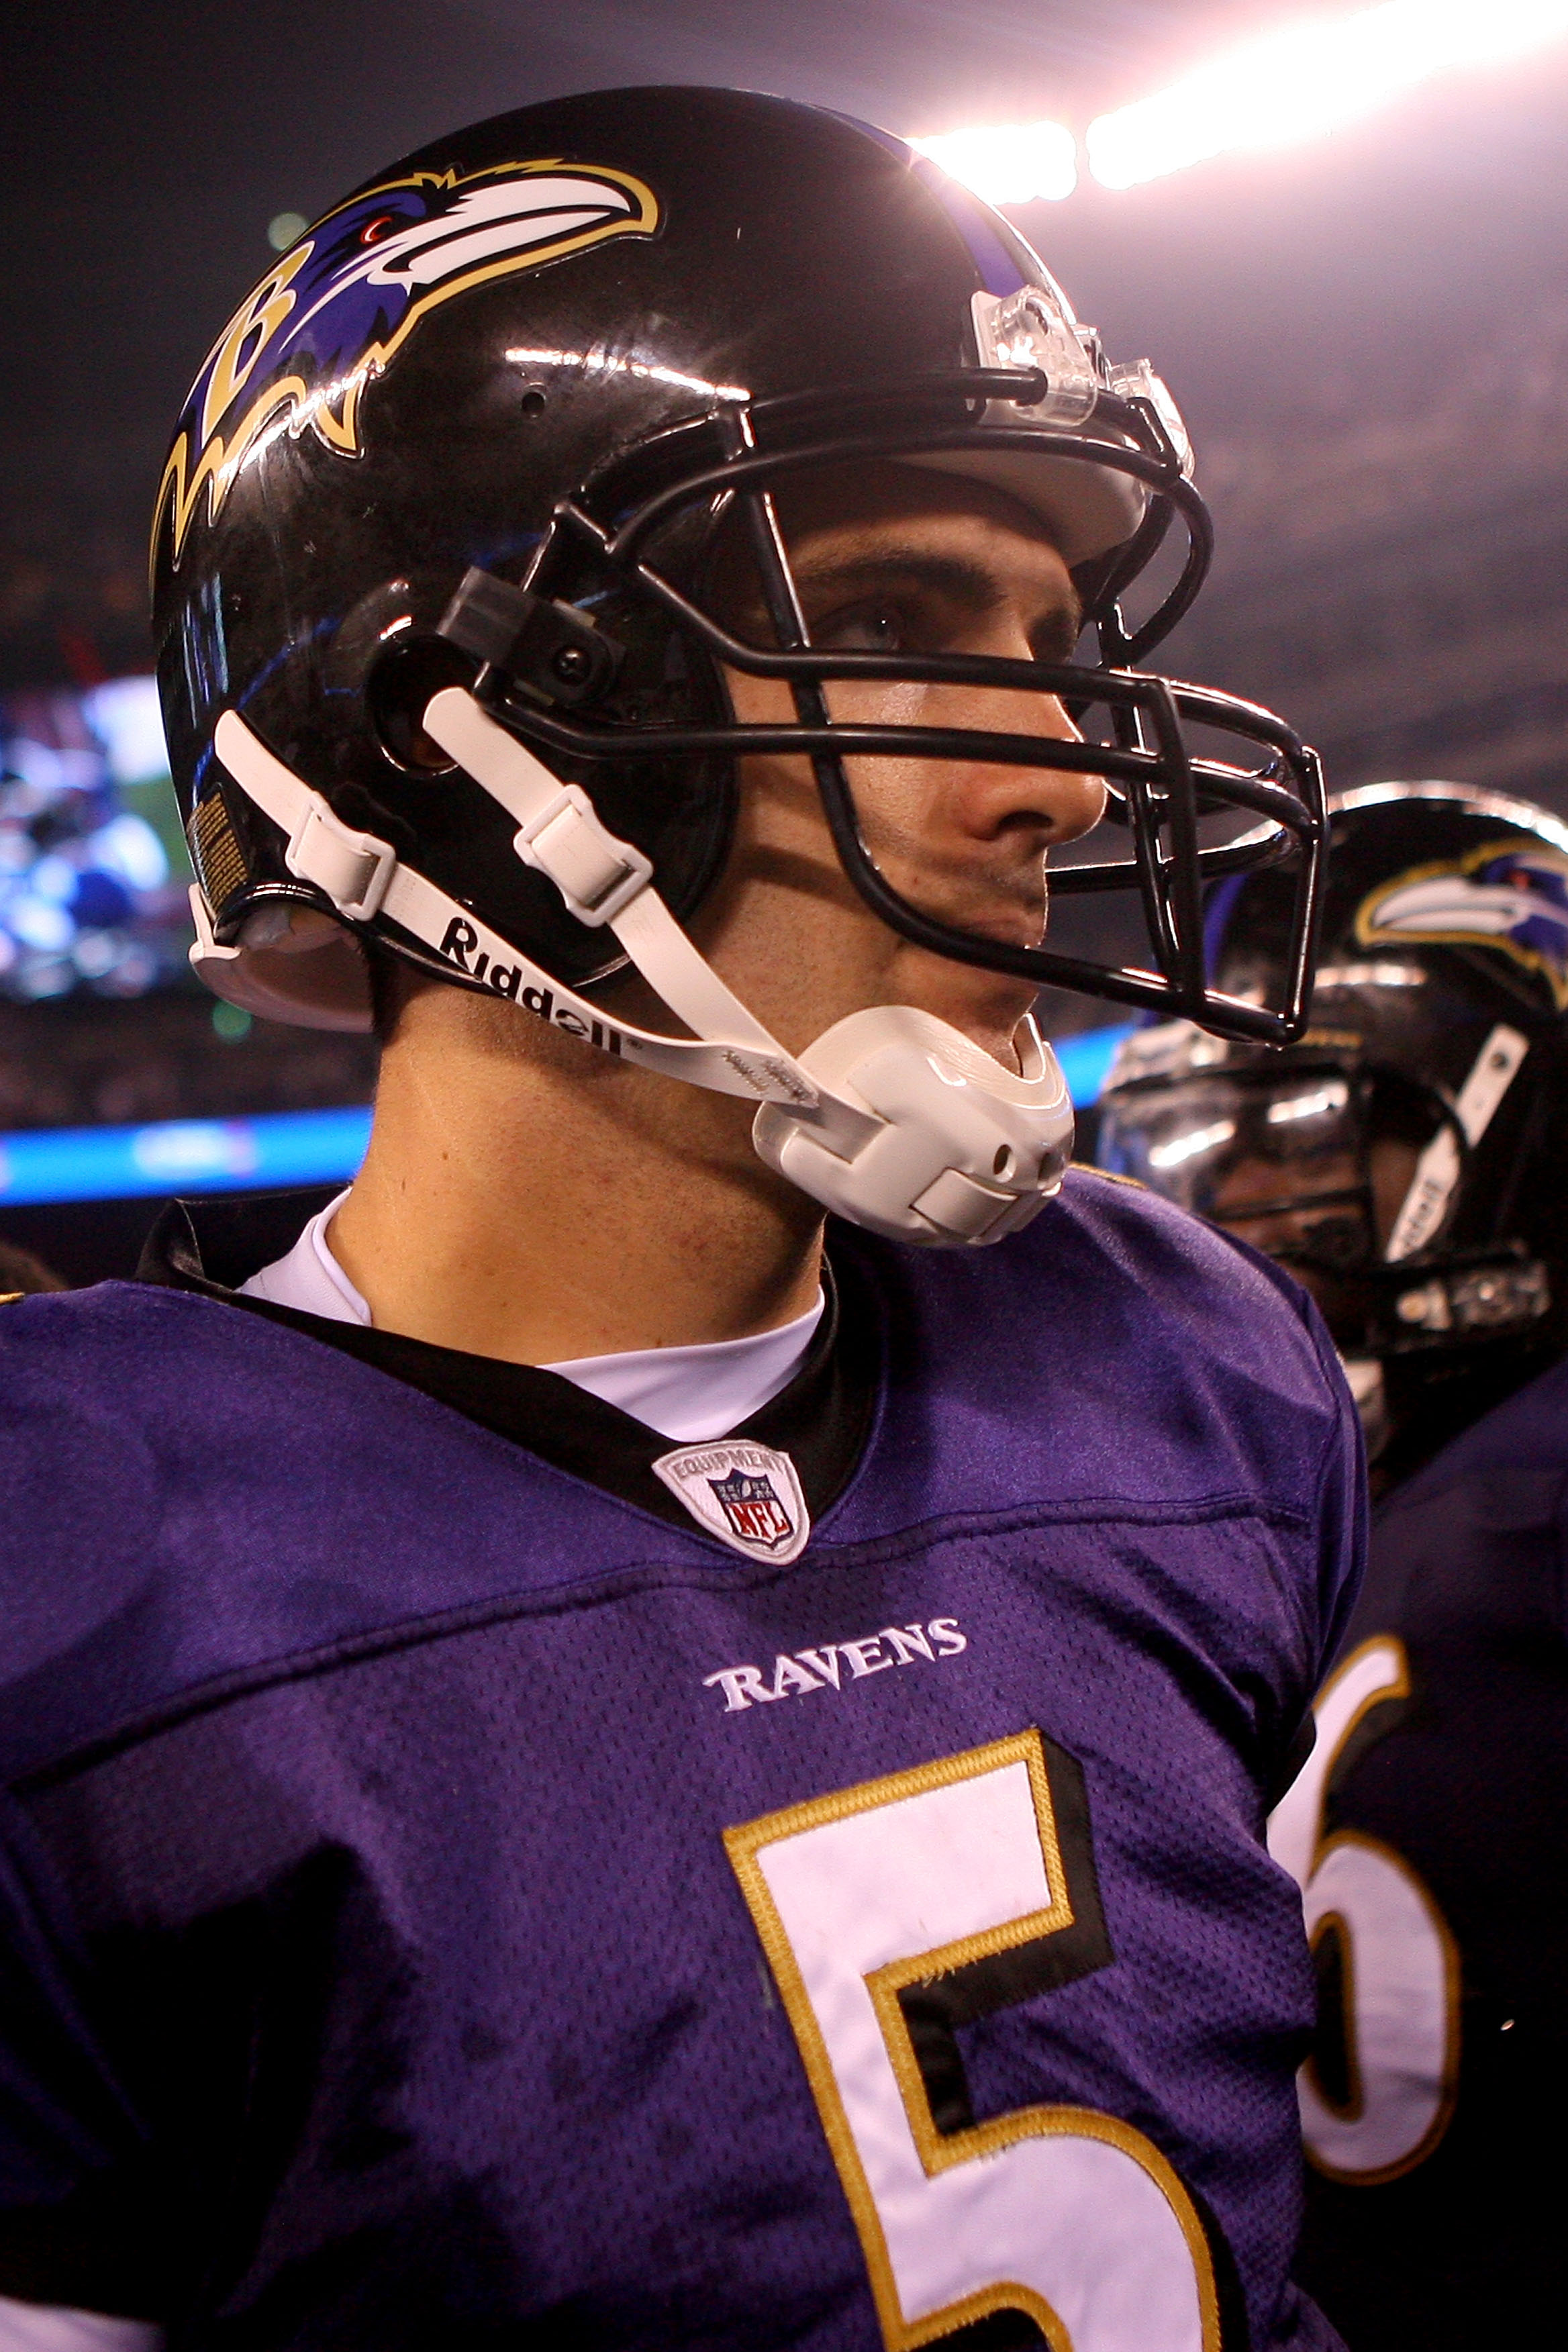 EAST RUTHERFORD, NJ - SEPTEMBER 13:  Joe Flacco #5 of the Baltimore Ravens walks off the field after defeating the New York Jets during their home opener at the New Meadowlands Stadium on September 13, 2010 in East Rutherford, New Jersey.  (Photo by Andre